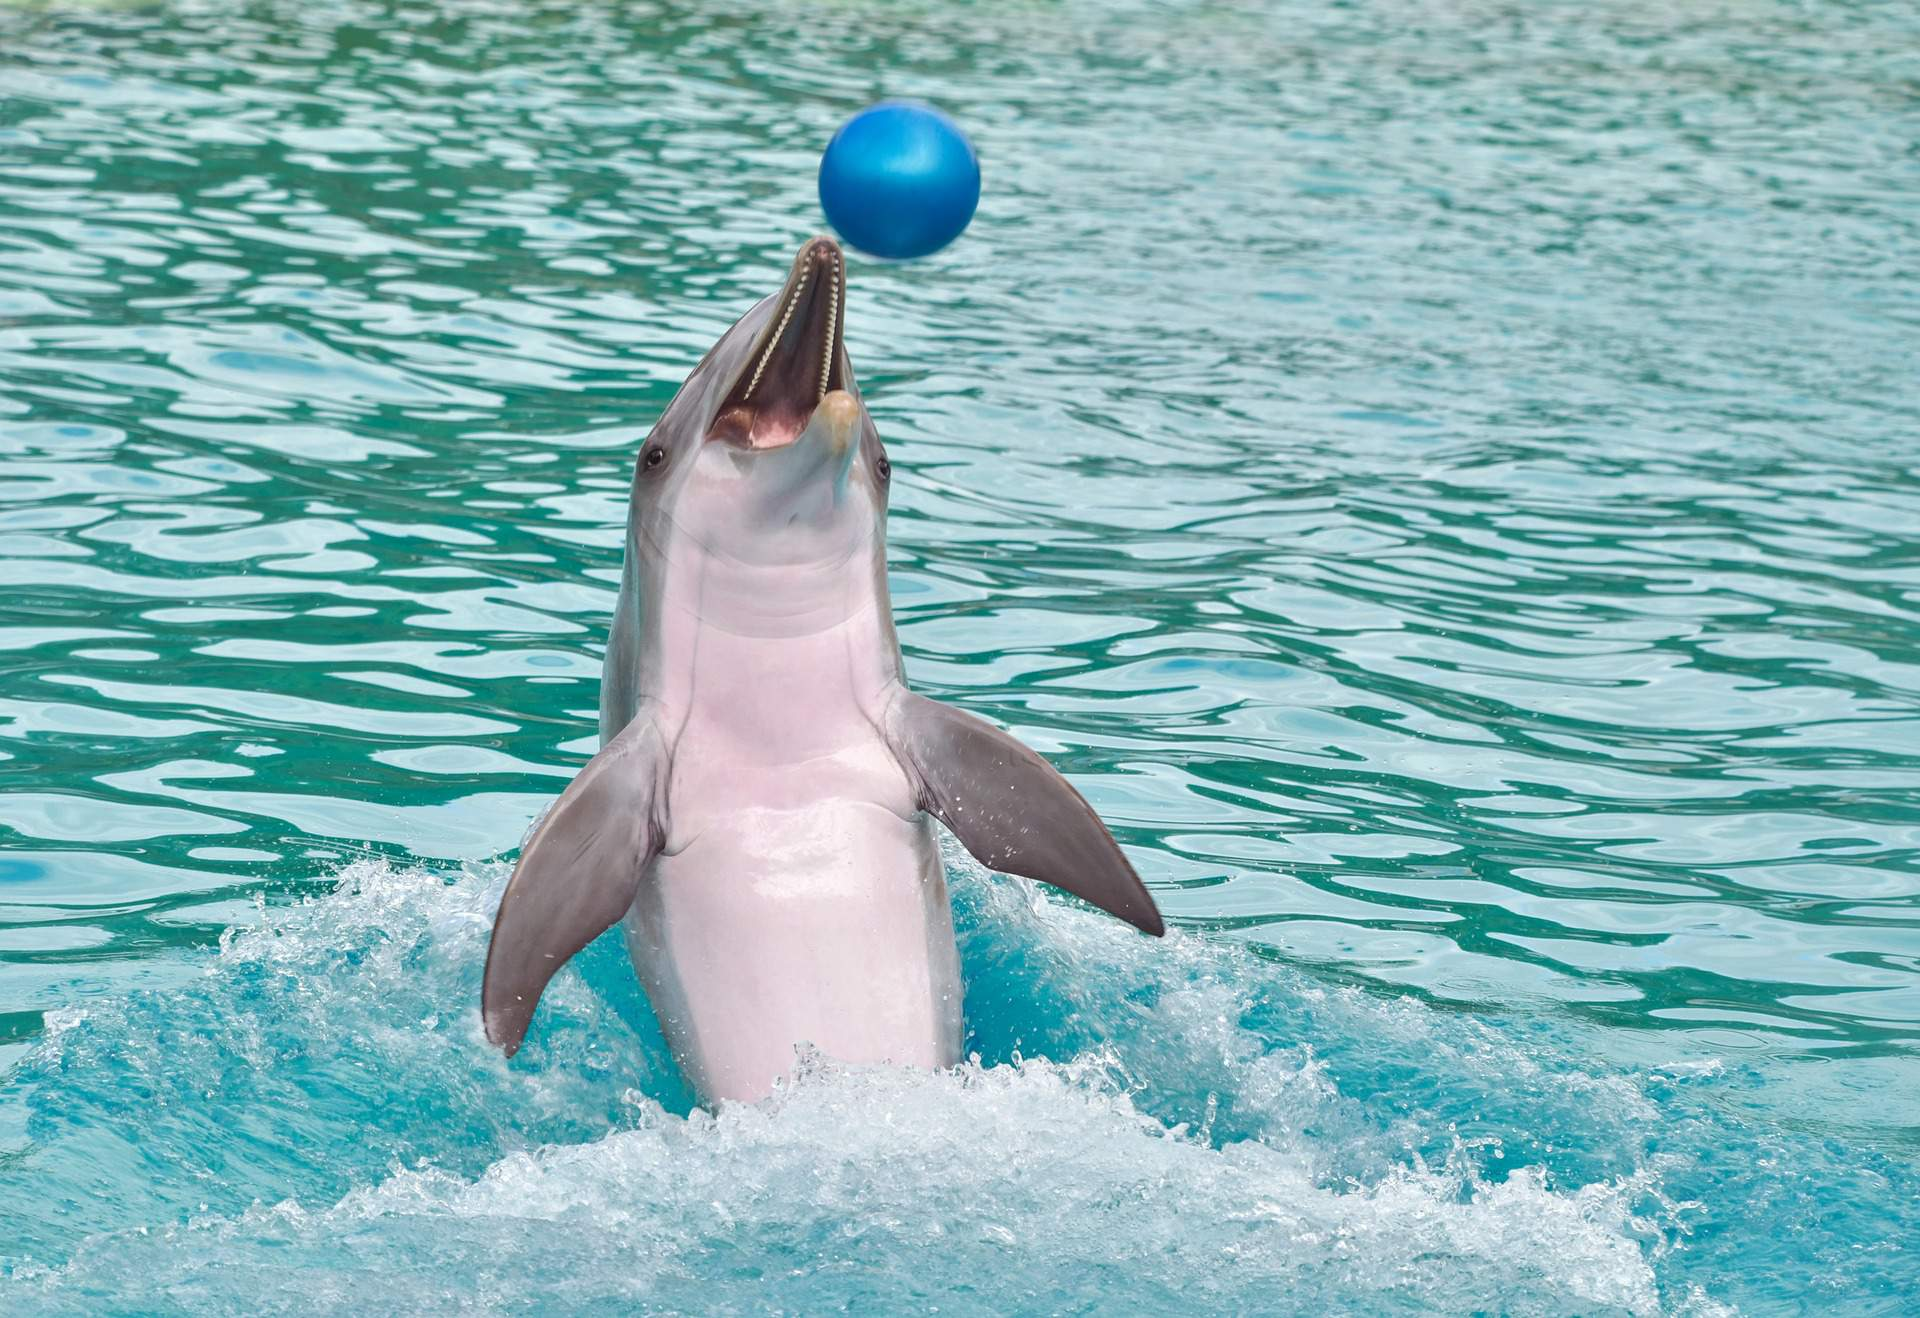 dolphin, water, sea, ball, animal